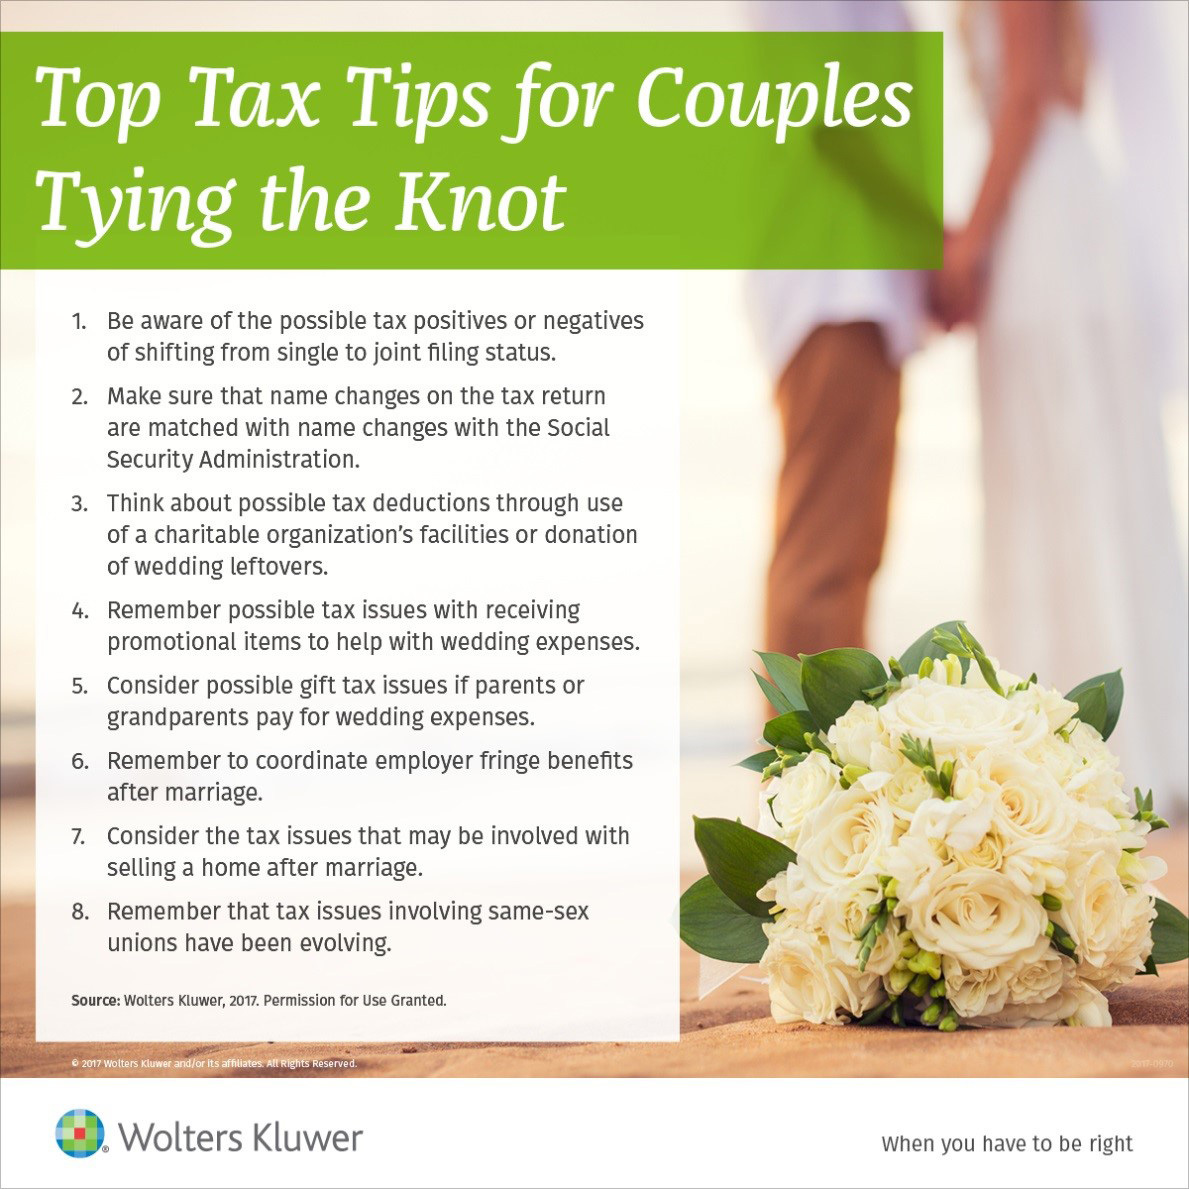 Top Tax Tips for Couples Tying the Knot from Wolters Kluwer (Graphic: Business Wire)